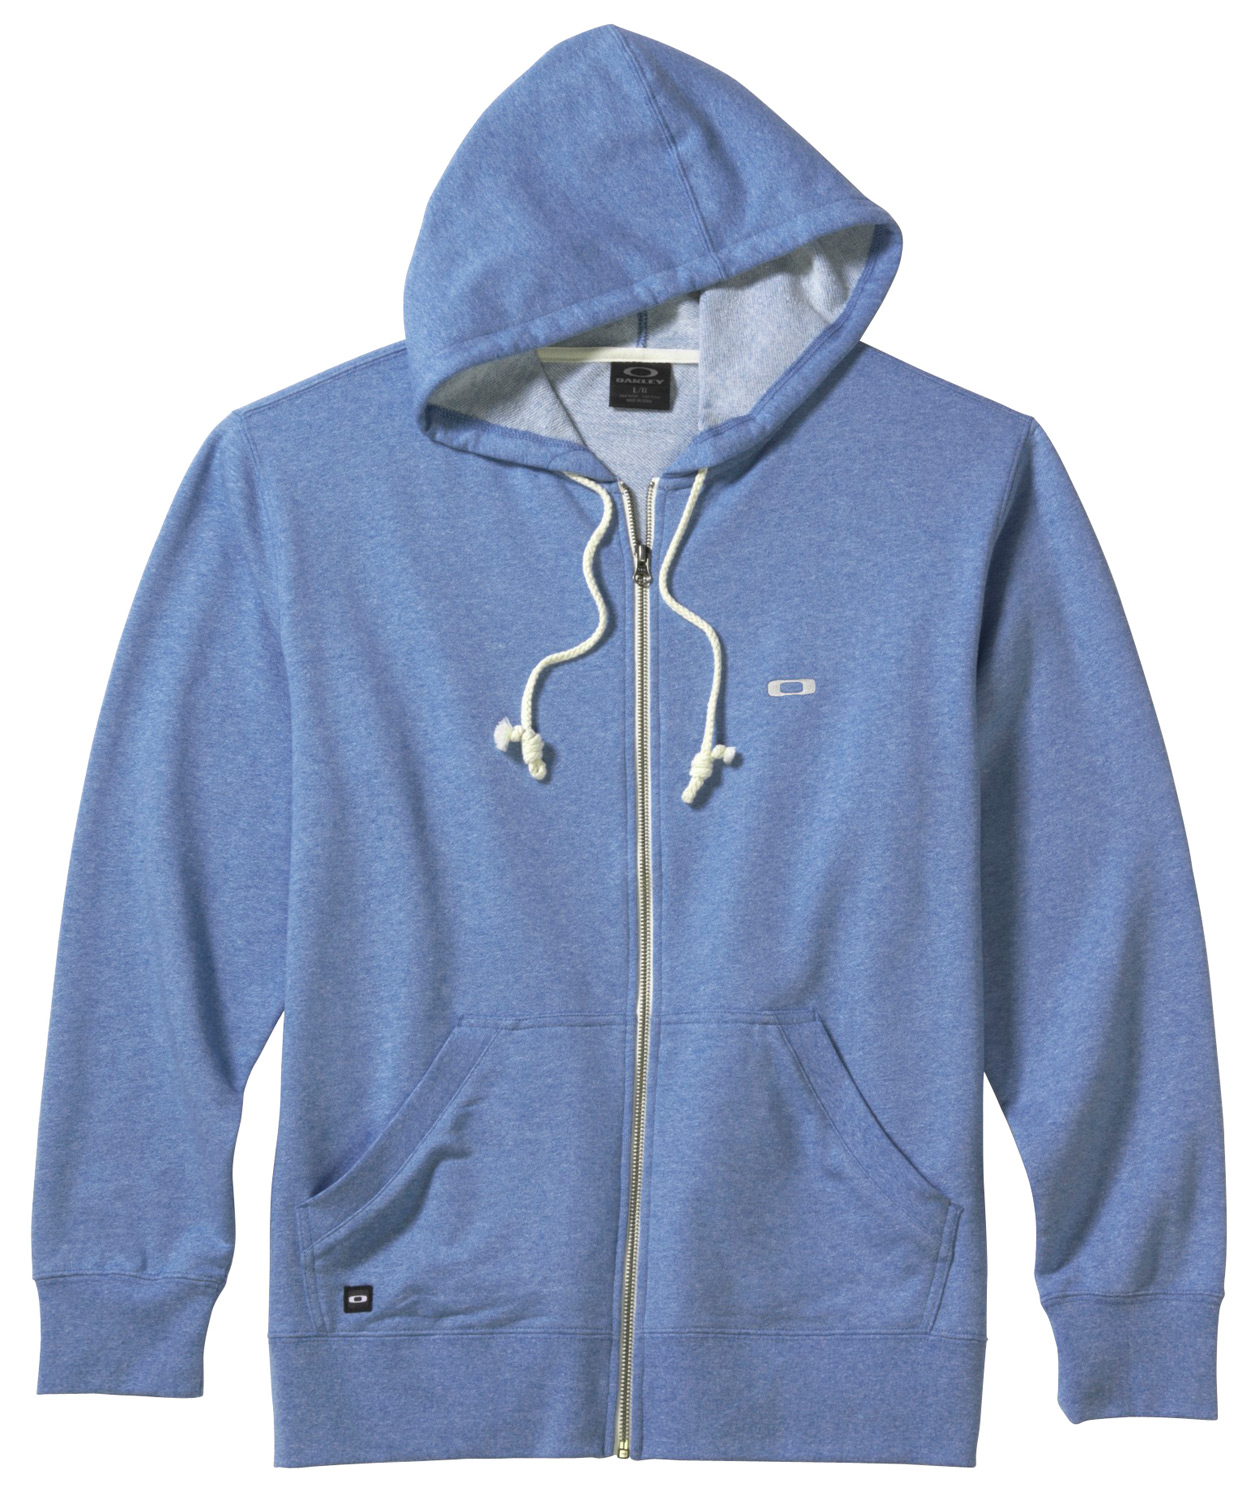 Full zip heather French terry hoodie with front hand pockets, natural drawcords and front logo embroideryKey Features of the Oakley Pennycross 2.0 Hoodie: 78% cotton/22% polyester - $42.95